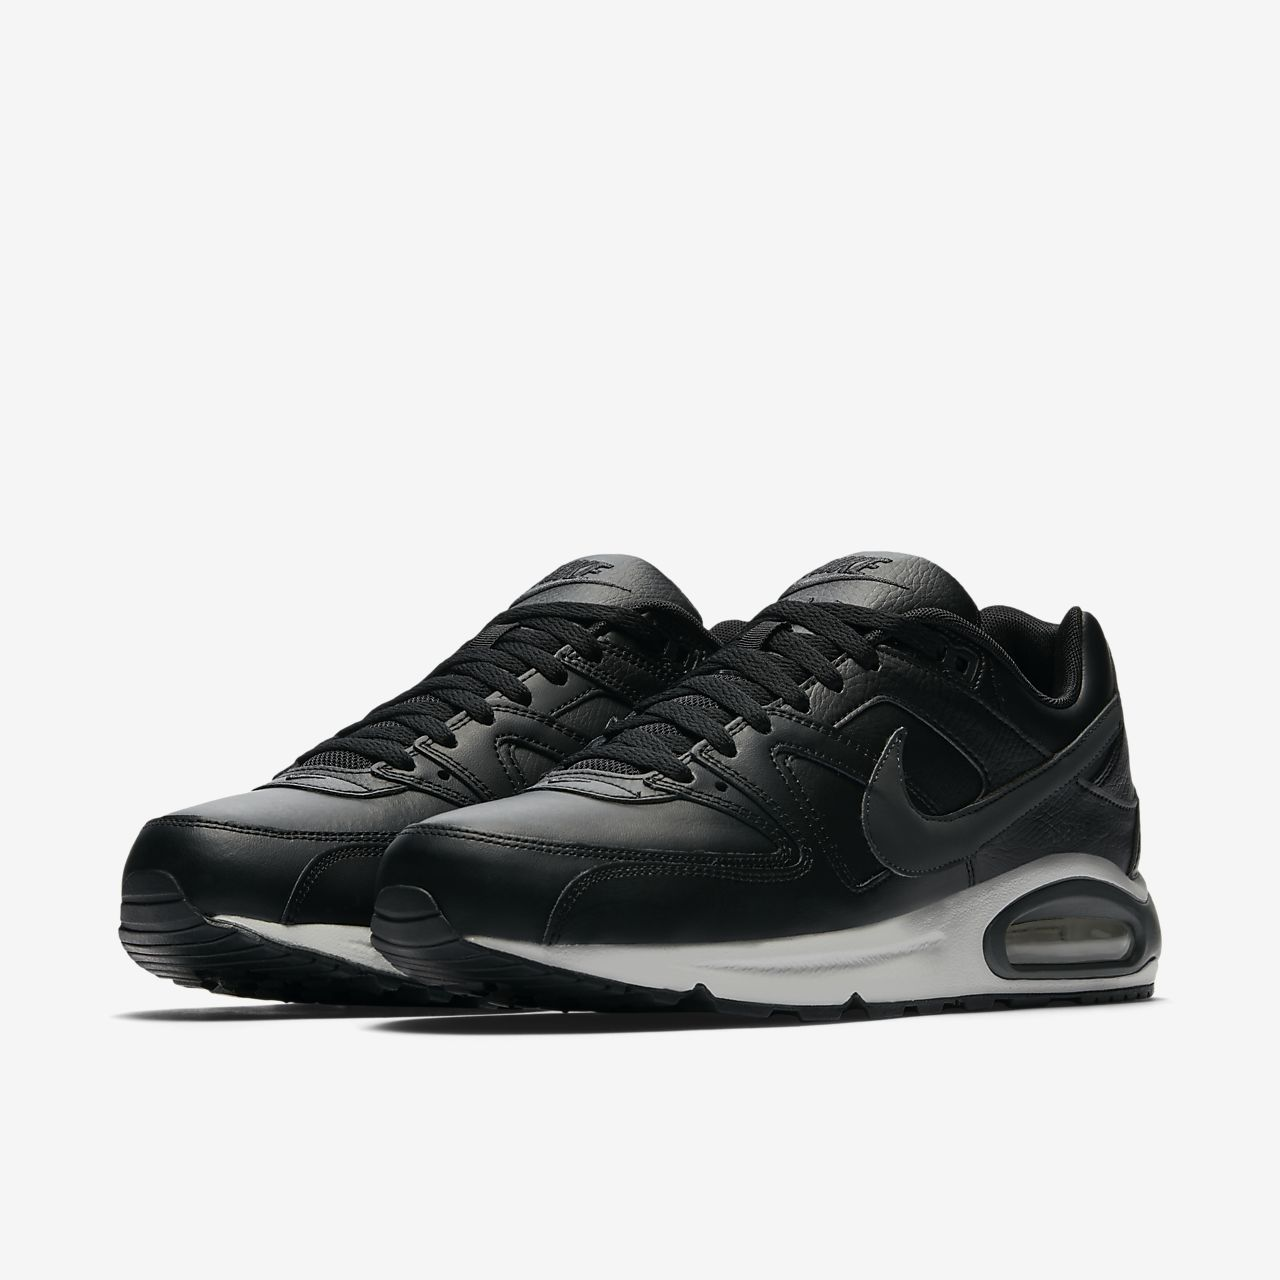 sneakers for cheap 9382f b8b3e ... Chaussure Nike Air Max Command pour Homme